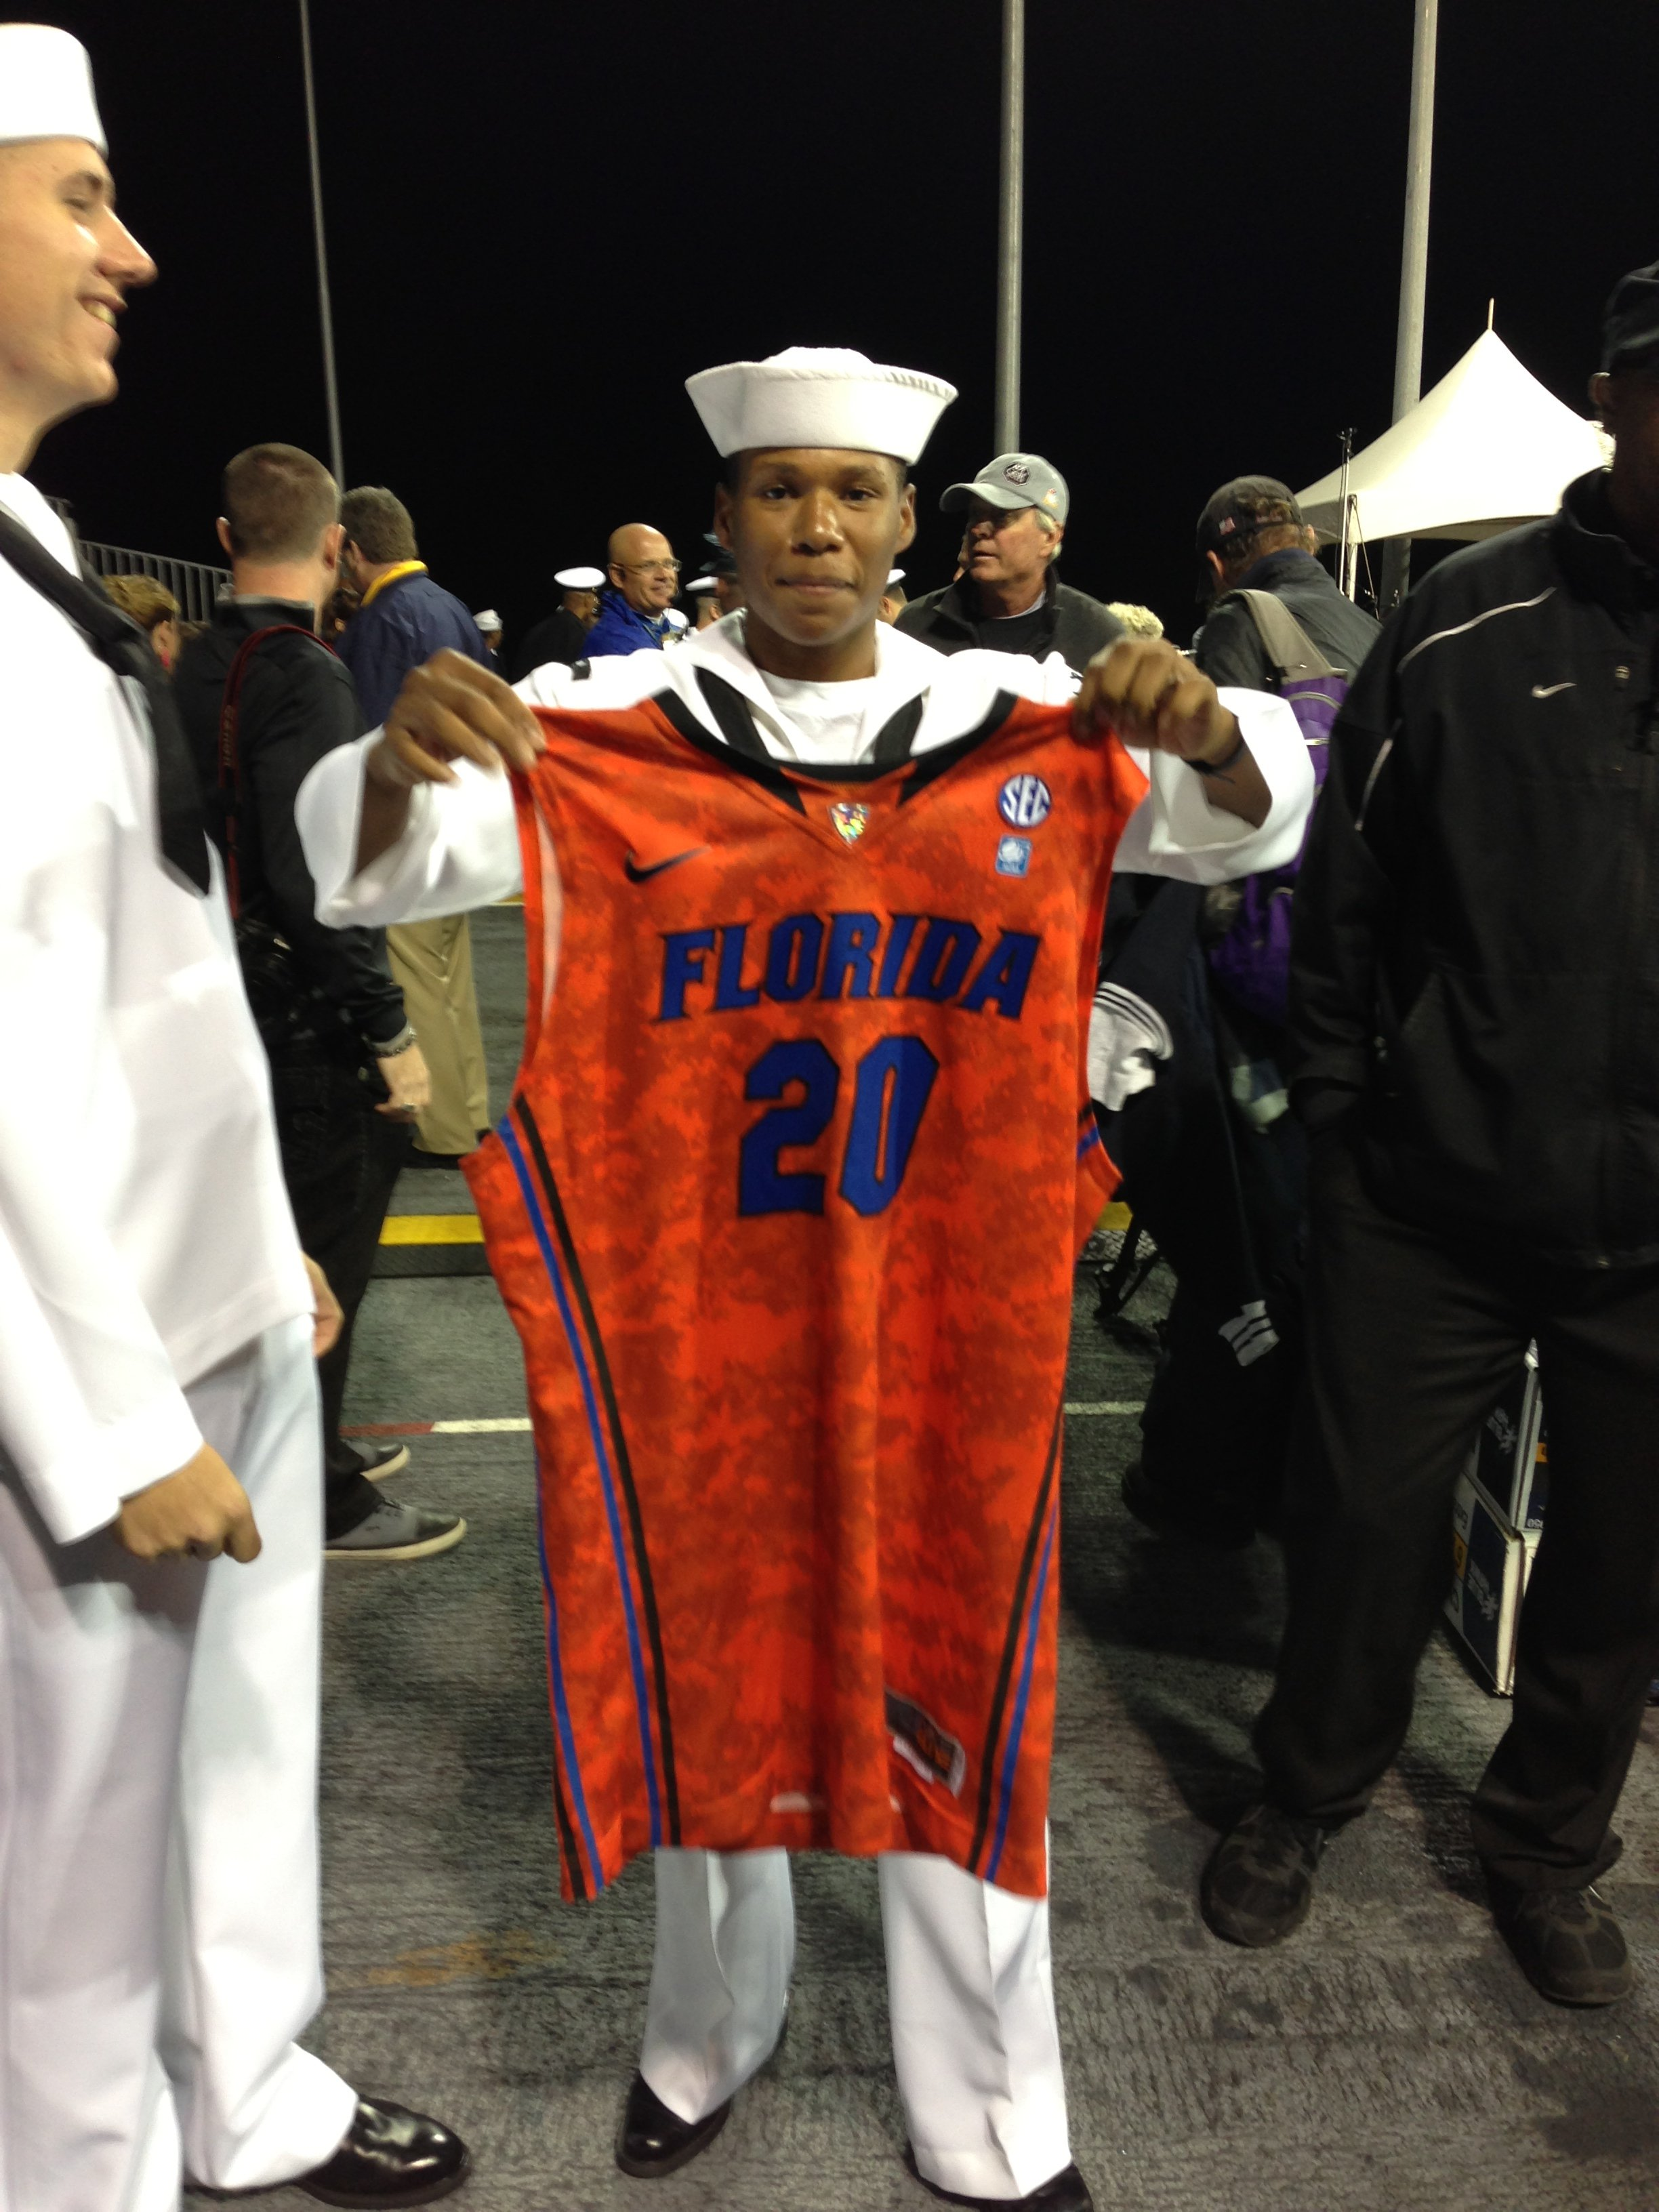 Sailor with Michael Frazier's No. 20